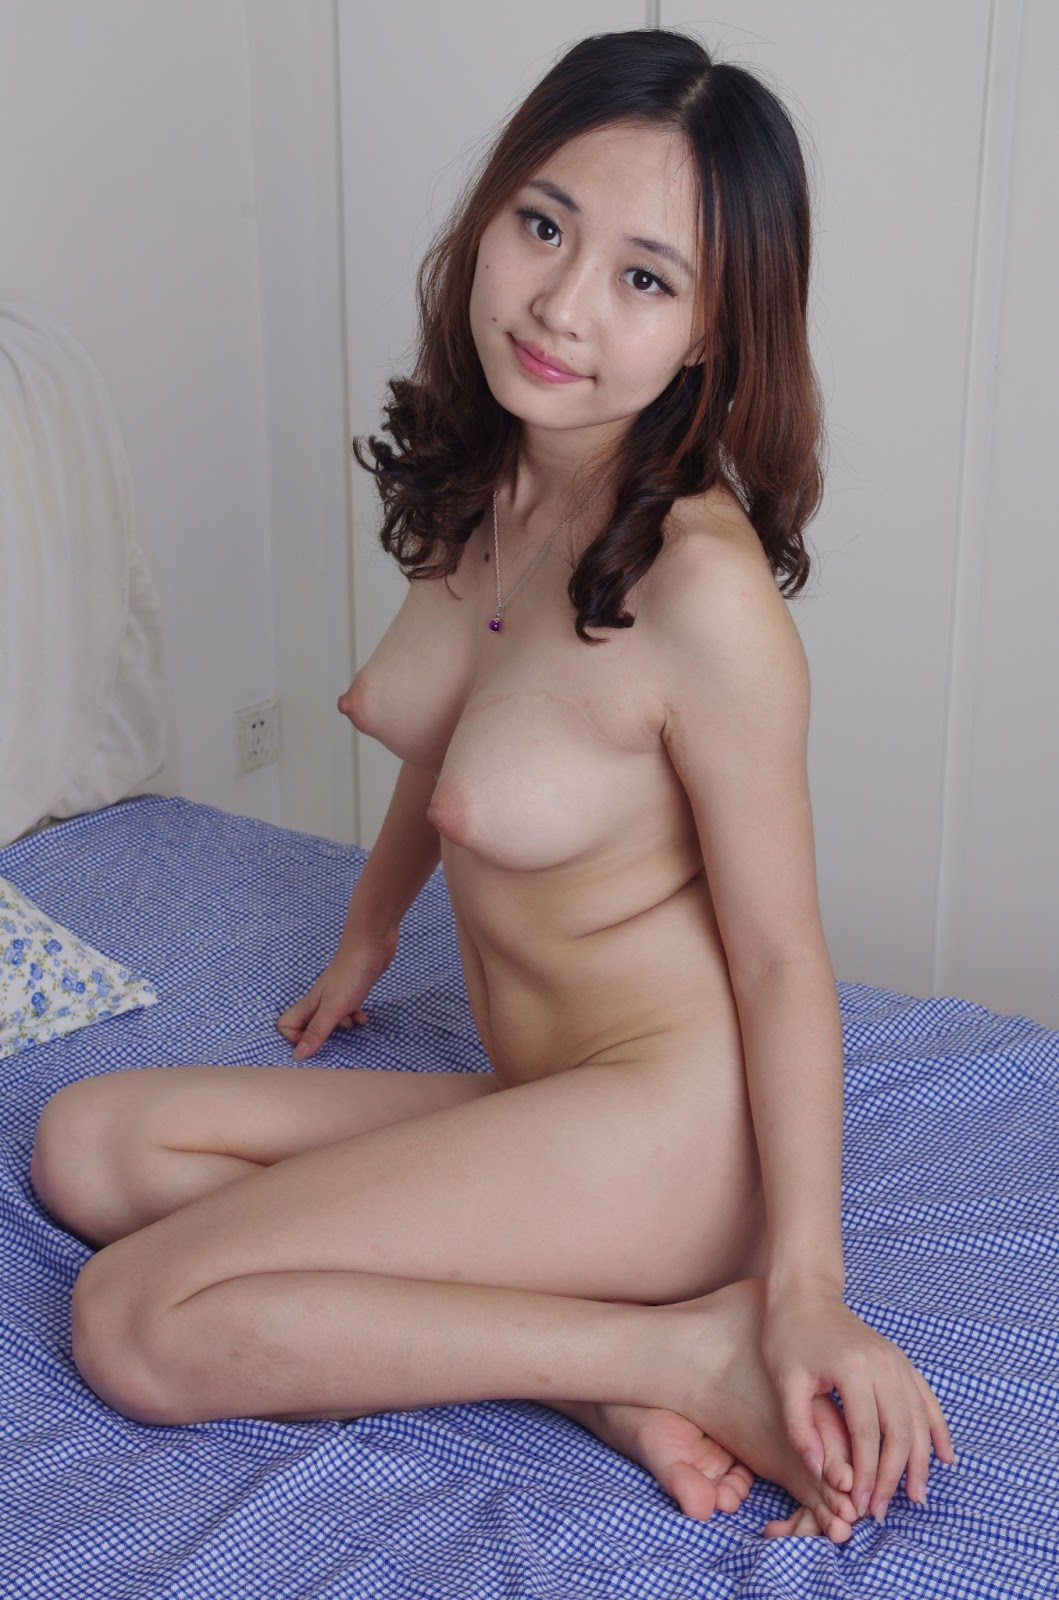 Cute asian nude